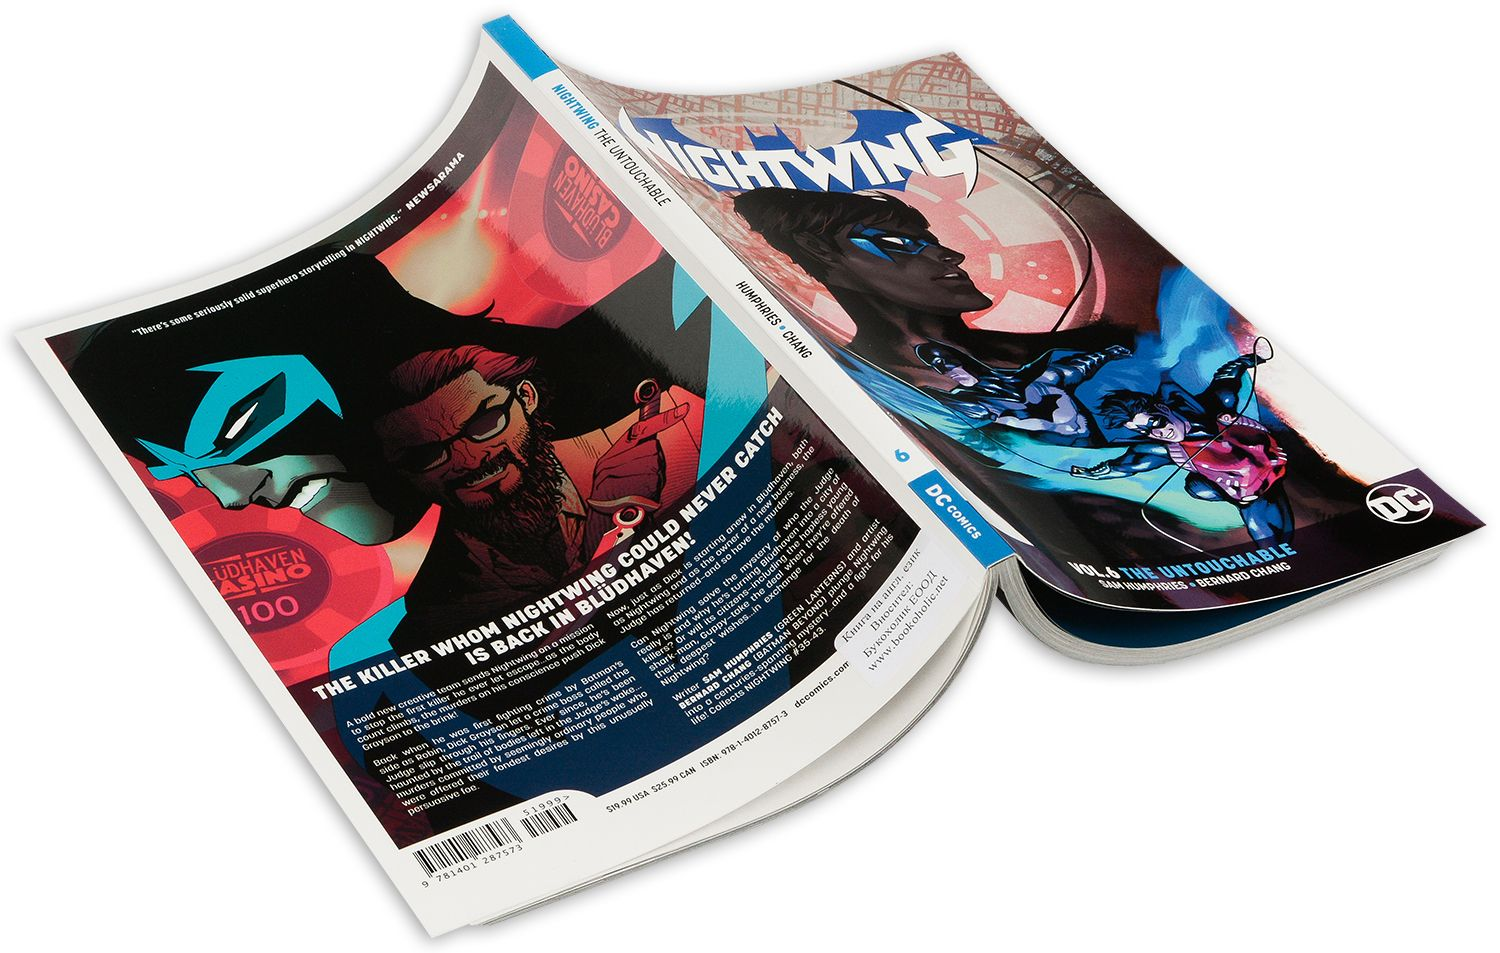 Nightwing Vol. 6: The Untouchable-3 - 4